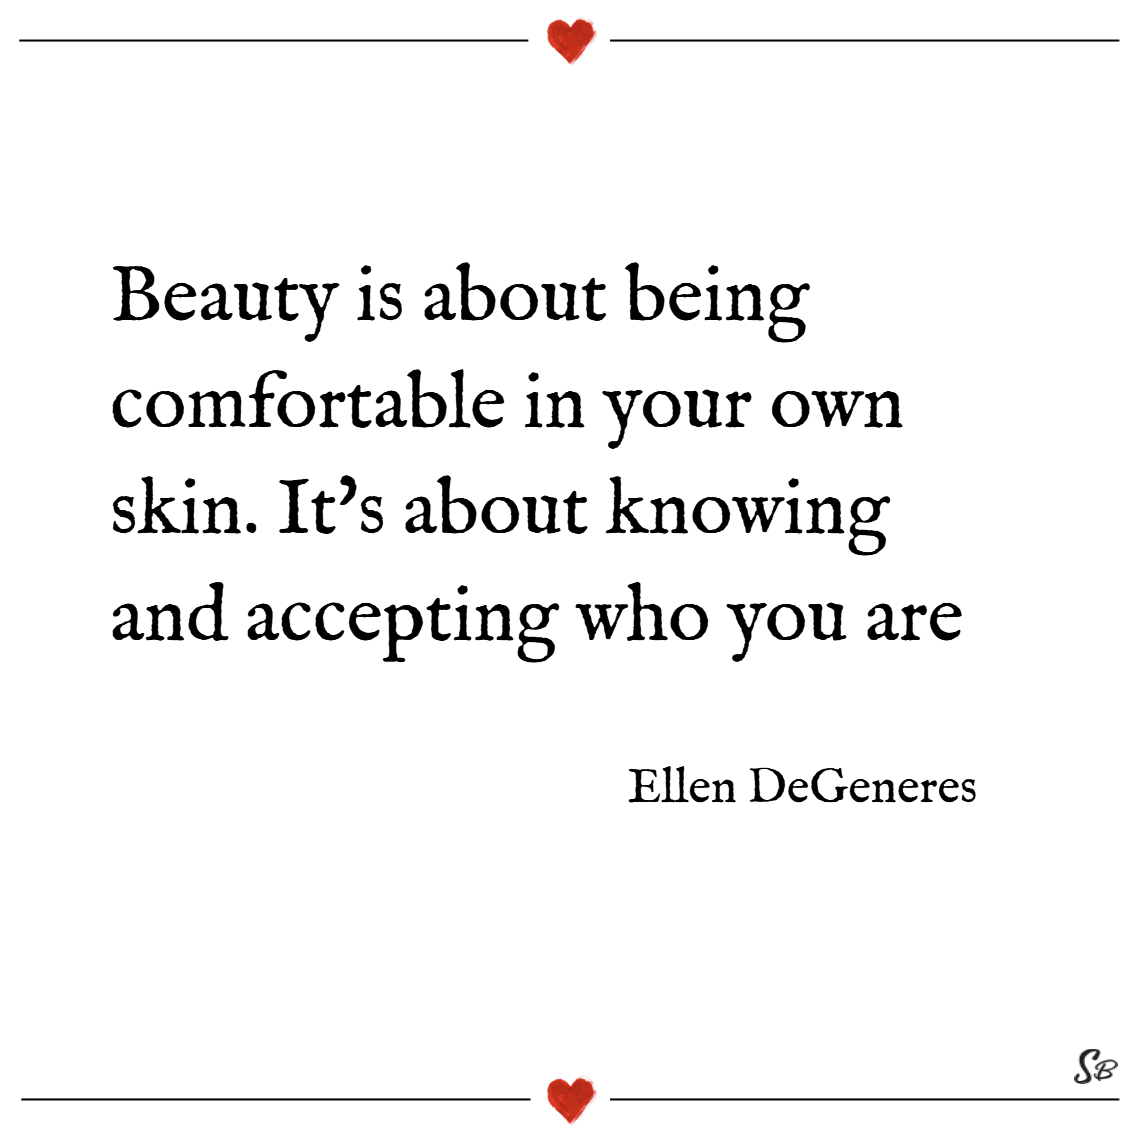 Beauty is about being comfortable in your own skin. it's about knowing and accepting who you are. – ellen degeneres